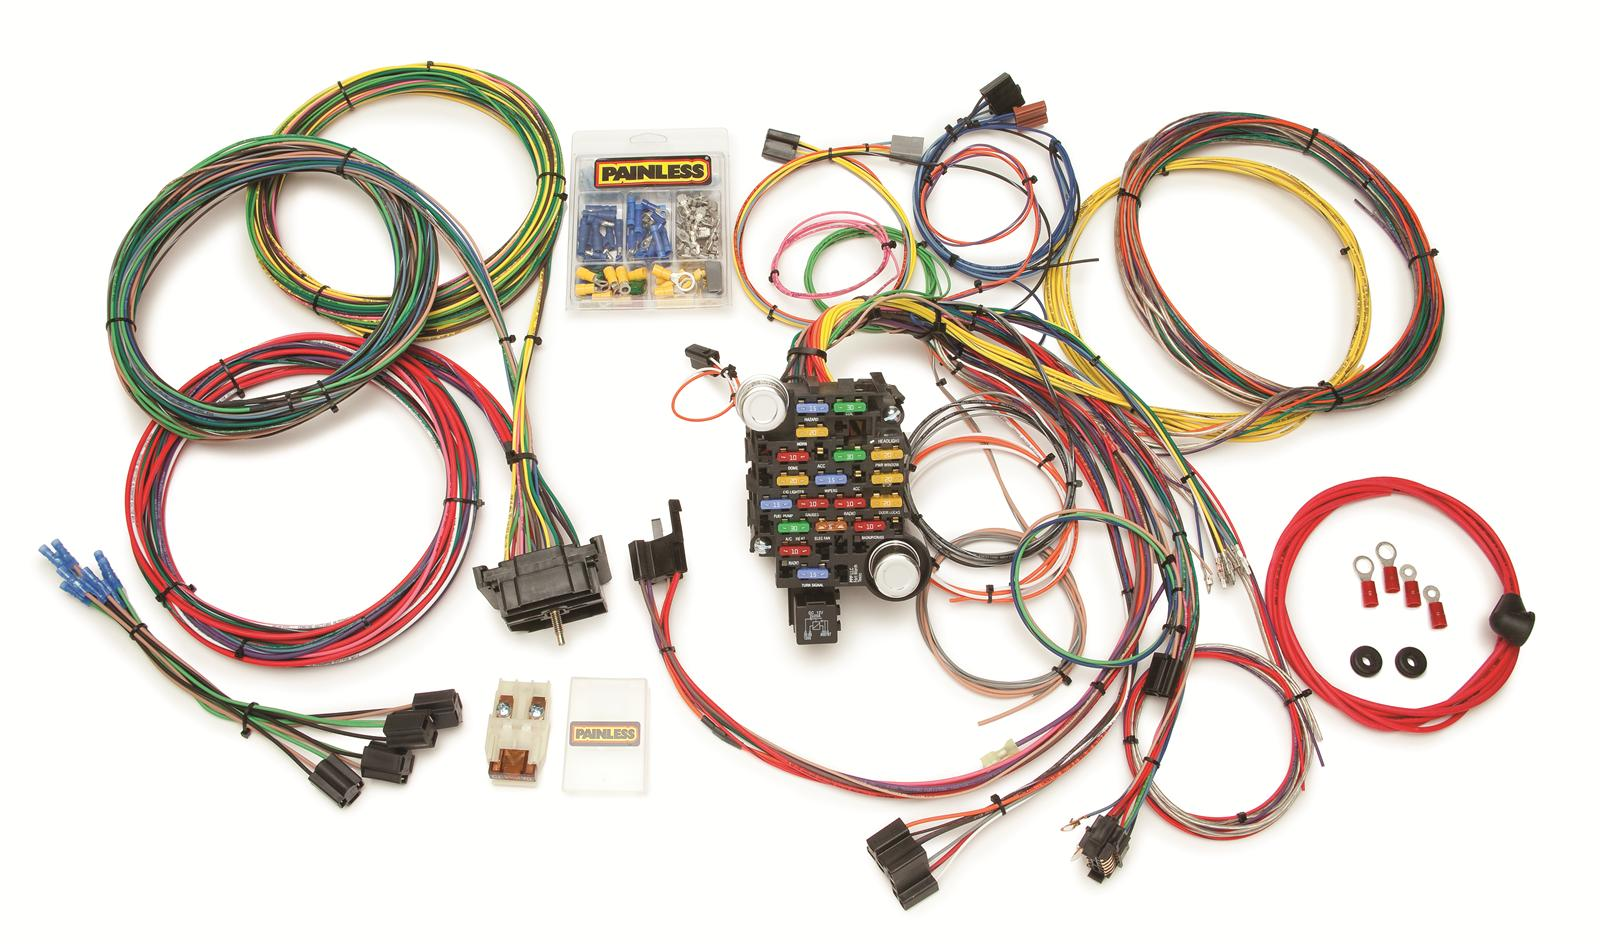 prf 10206_xl painless performance gmc chevy truck harnesses 10206 free wiring harness parts at readyjetset.co